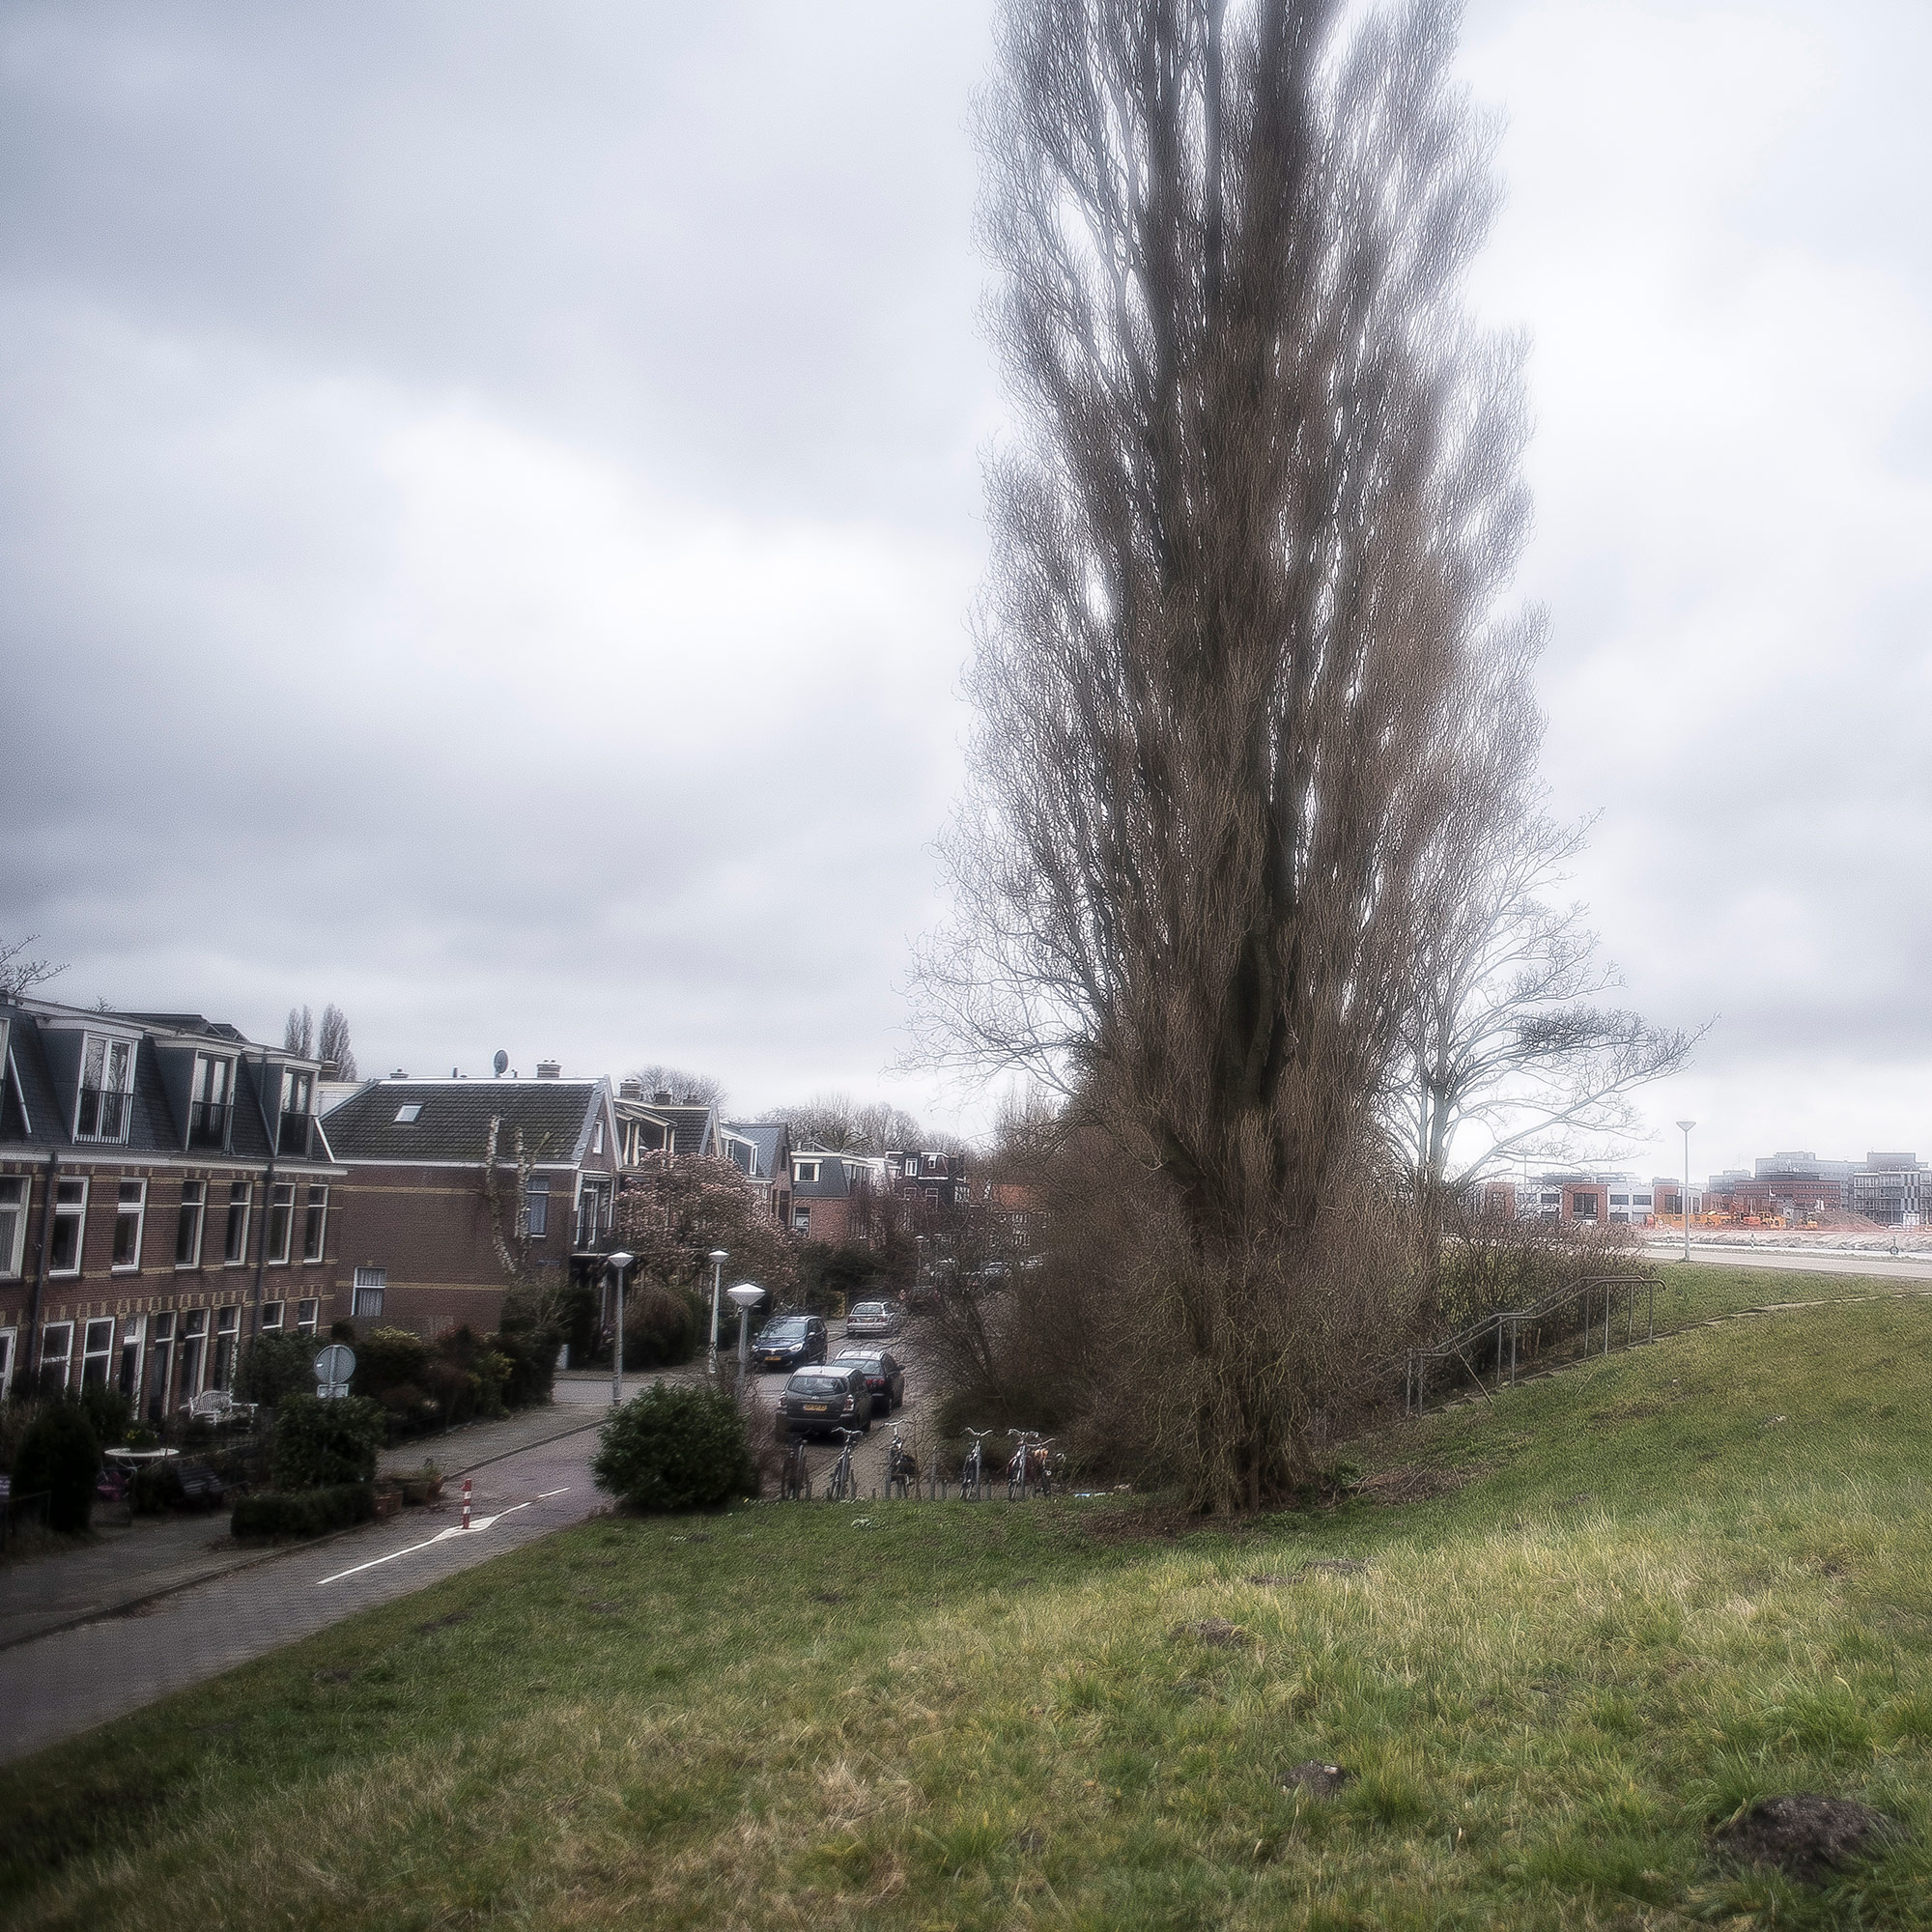 The Watergraafsmeer, now part of East Amsterdam, was reclaimed from marshland in the 17th century. If the levee fails, 60,000 people would be inundated. (Photo by Joris van Gennip/GroundTruth)